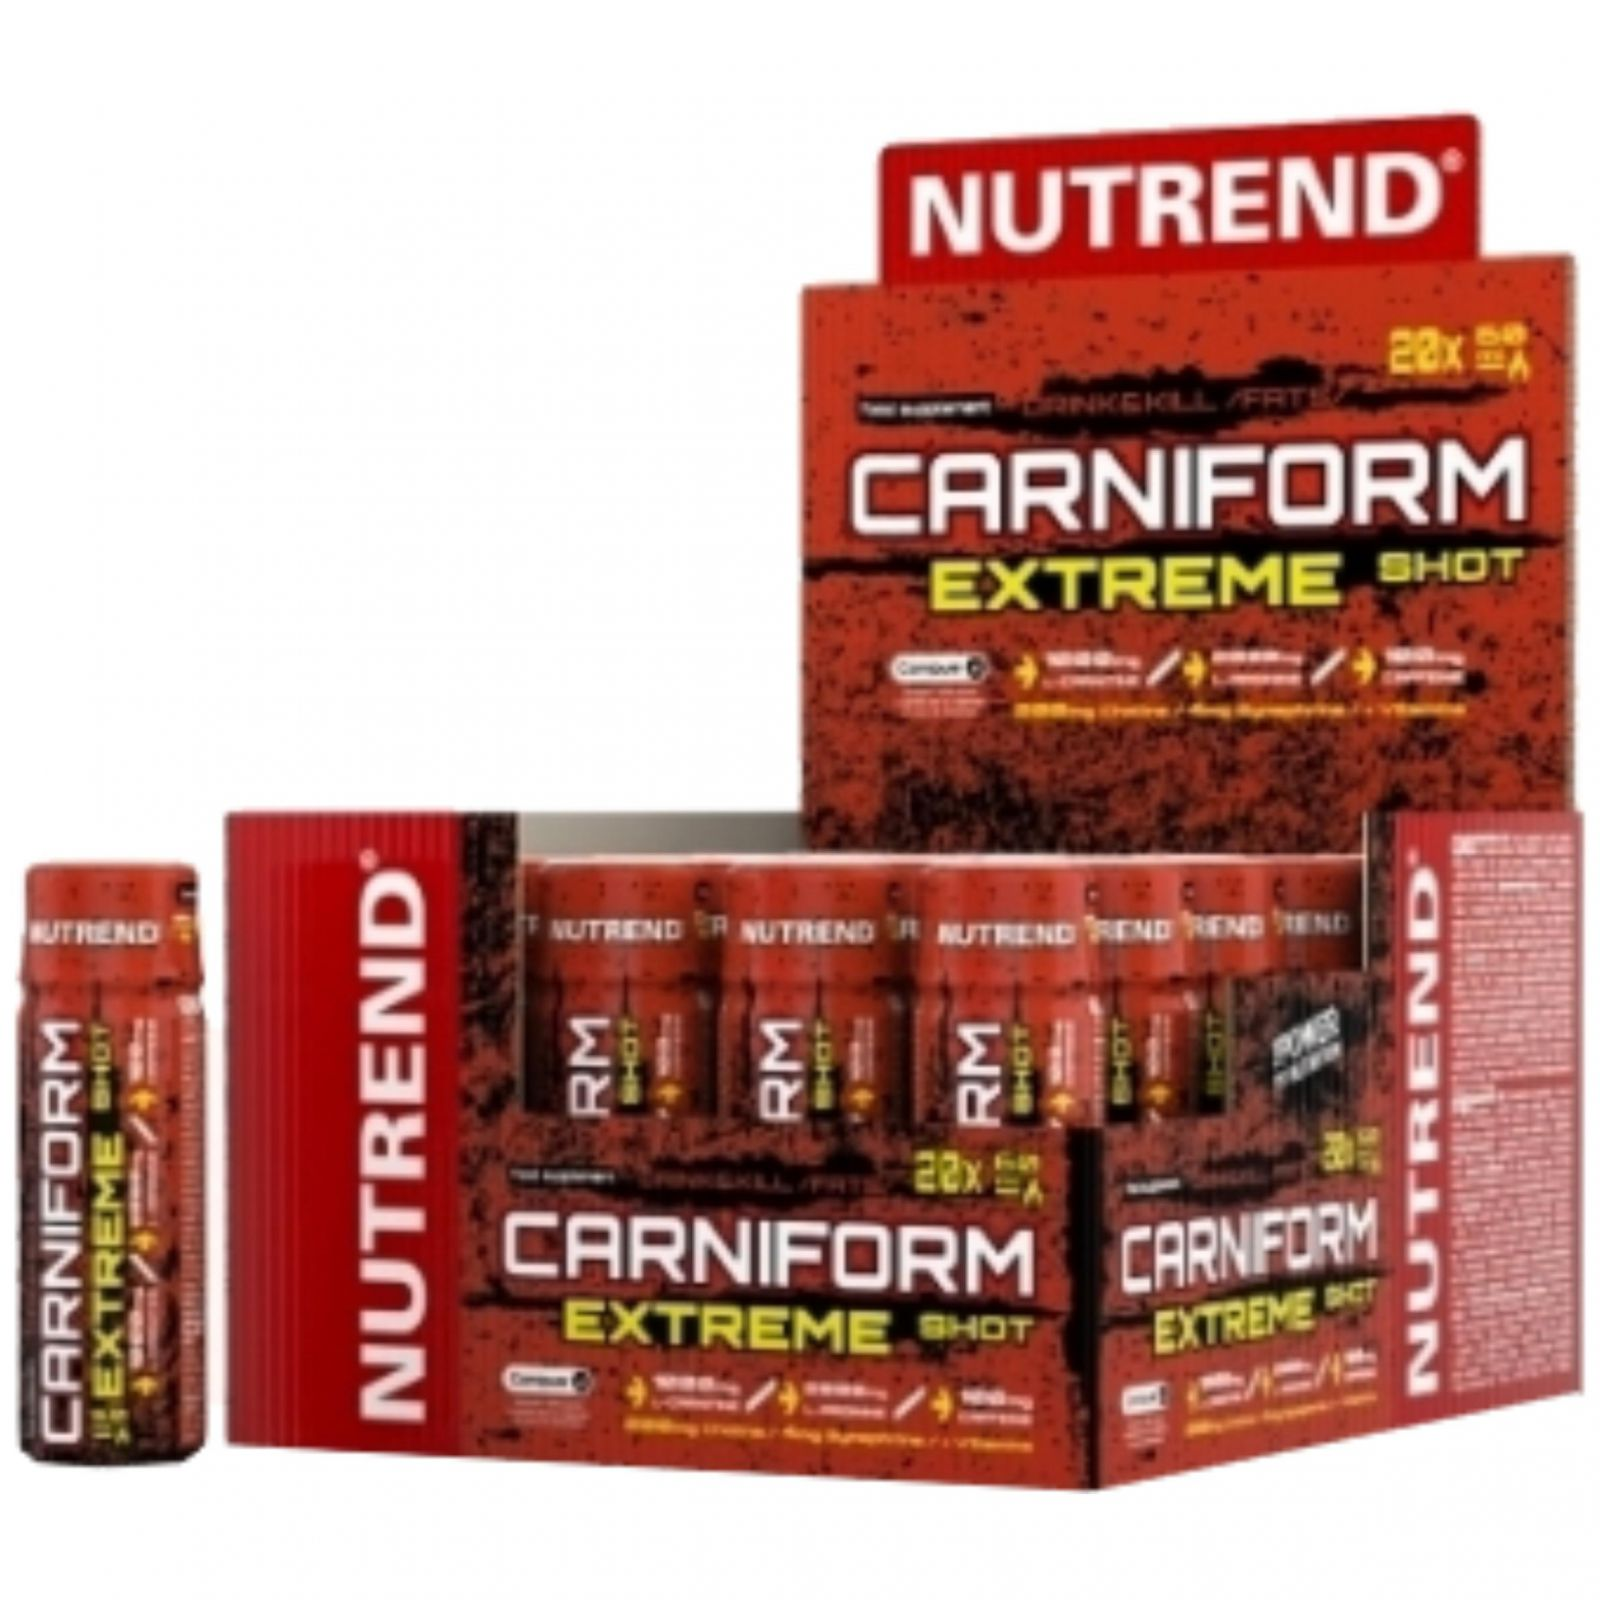 CARNIFORM SHOT 20 x 60 ml